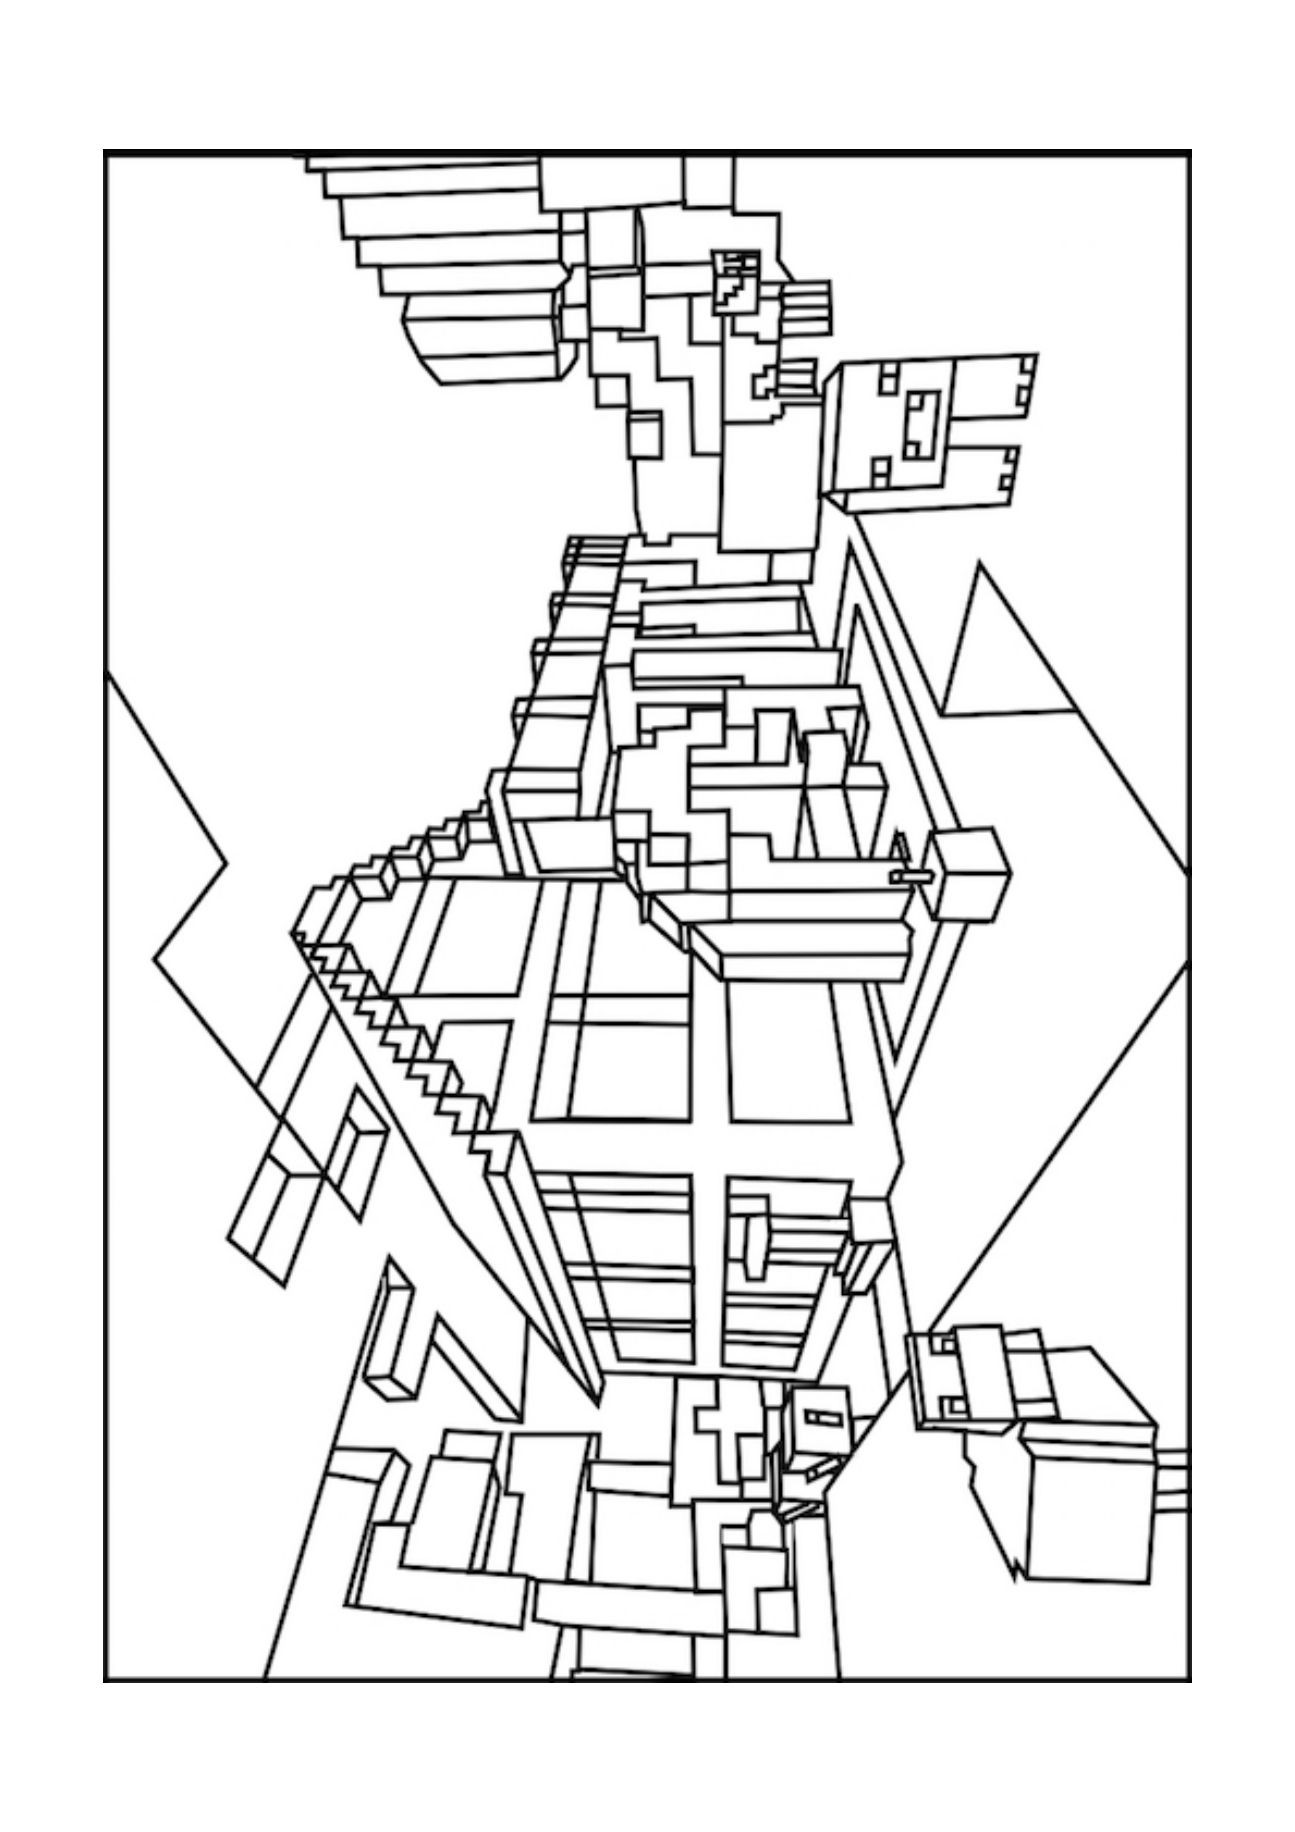 minecraft mutant enderman coloring pages minecraft coloring pages enderman at getcoloringscom coloring pages enderman mutant minecraft